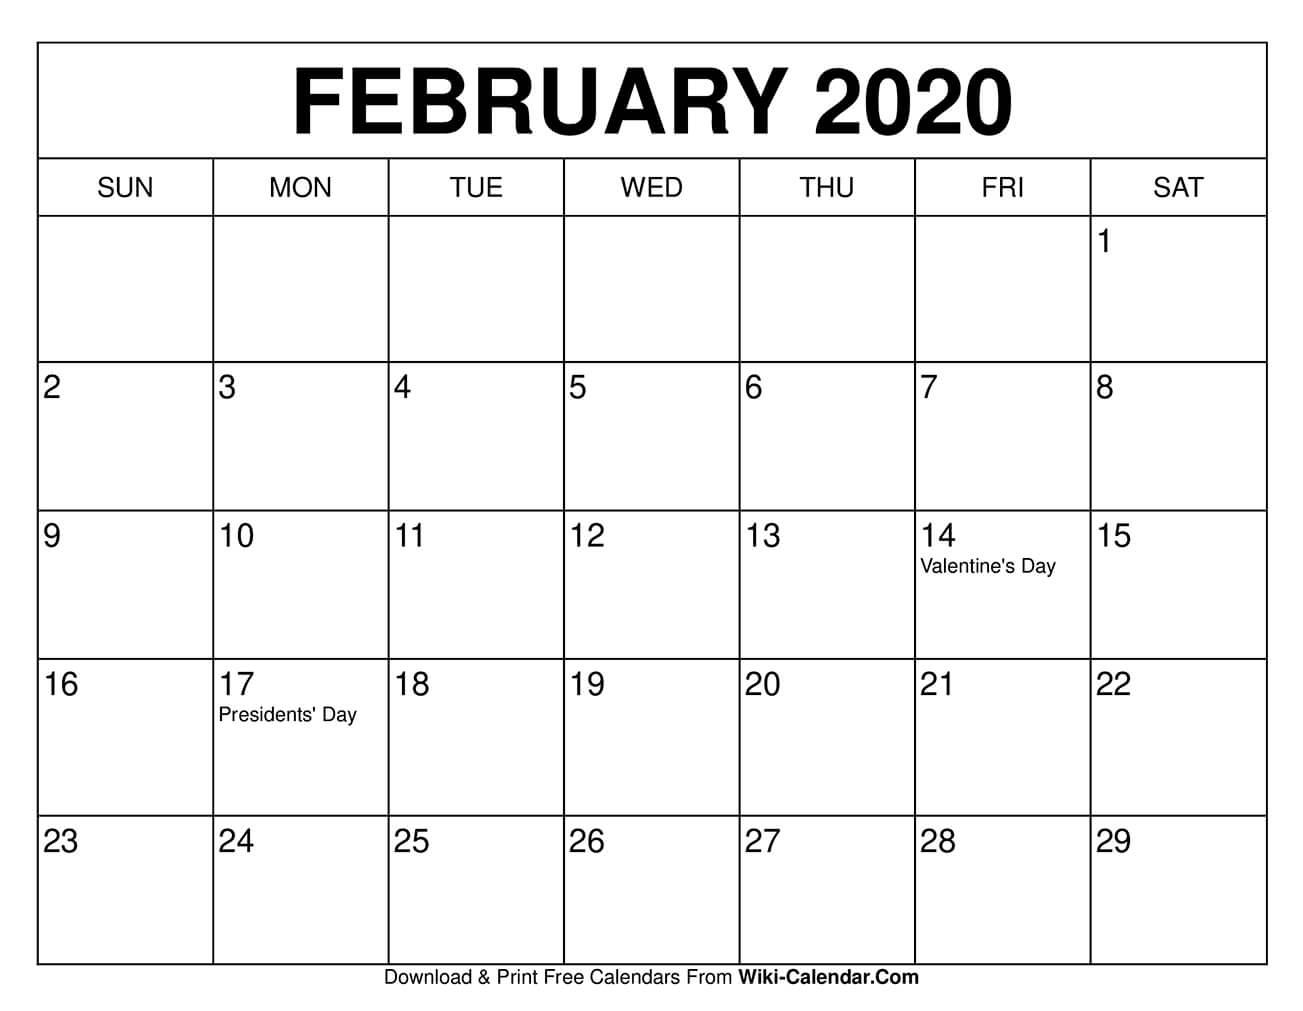 Free Printable February 2021 Calendars in Print Free Calendars Without Downloading 2020